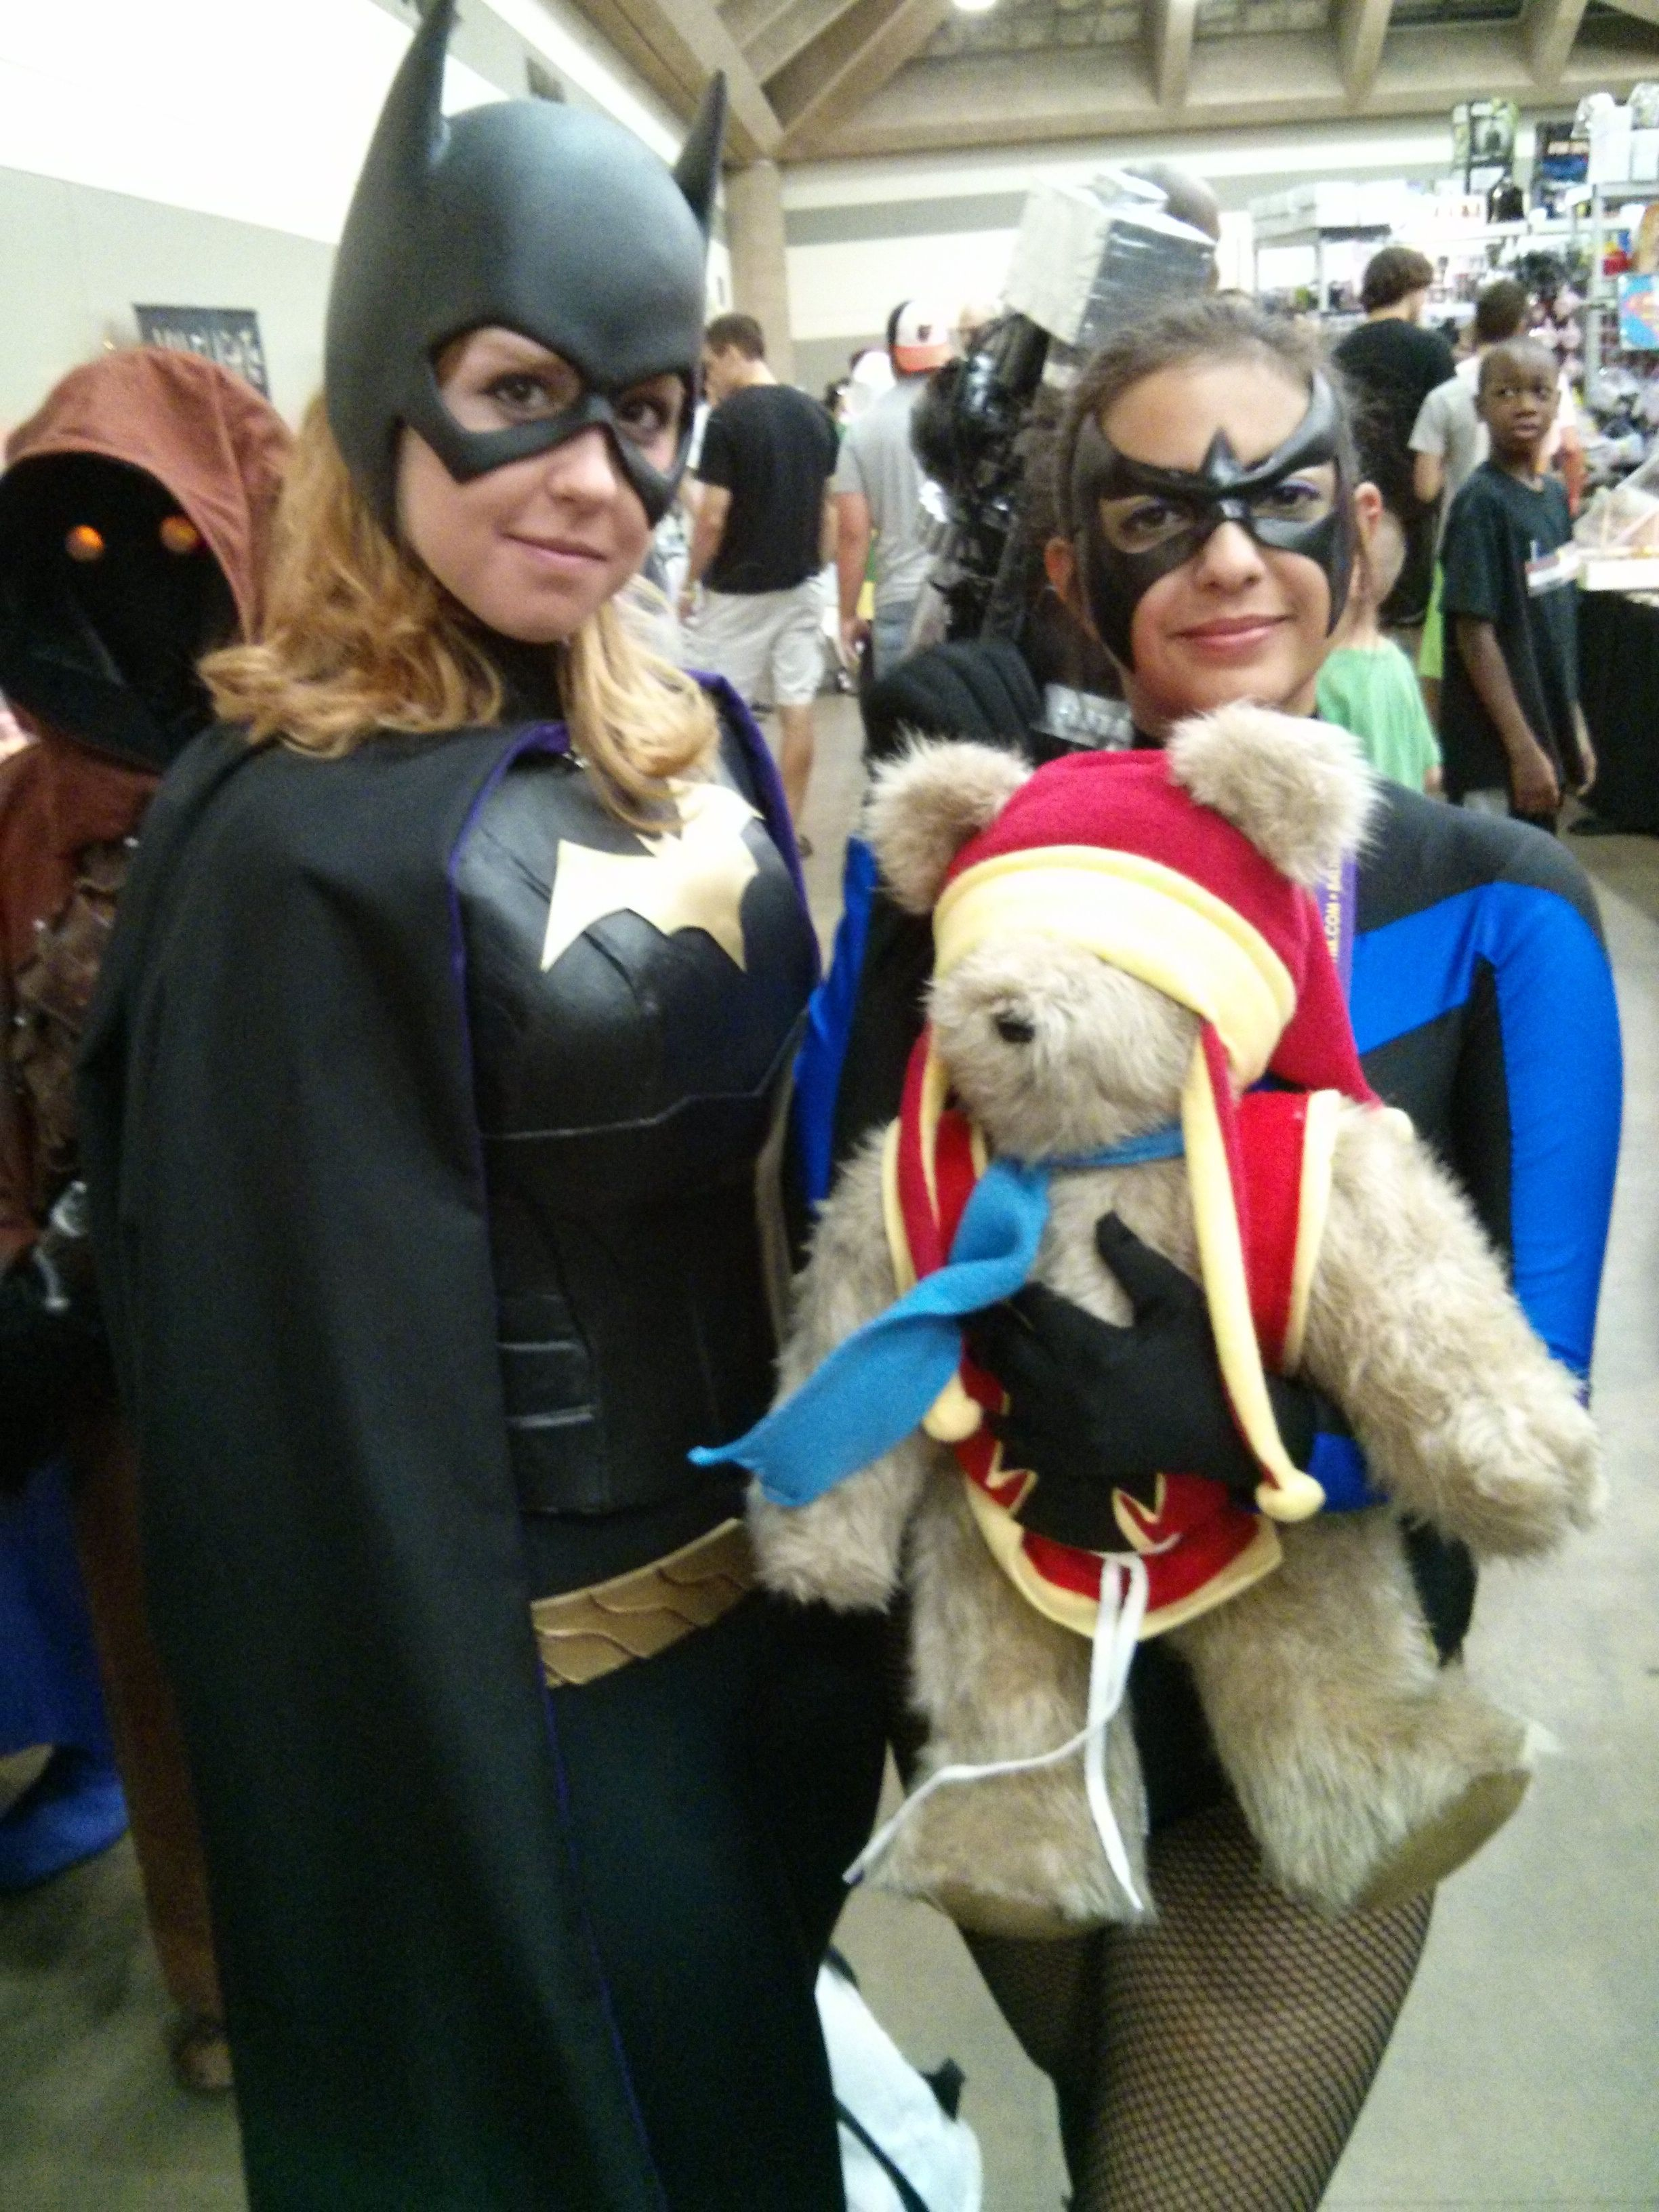 Tristan the Teddy Bear meets Shredder at Sci-Fi in the Valley Con ...